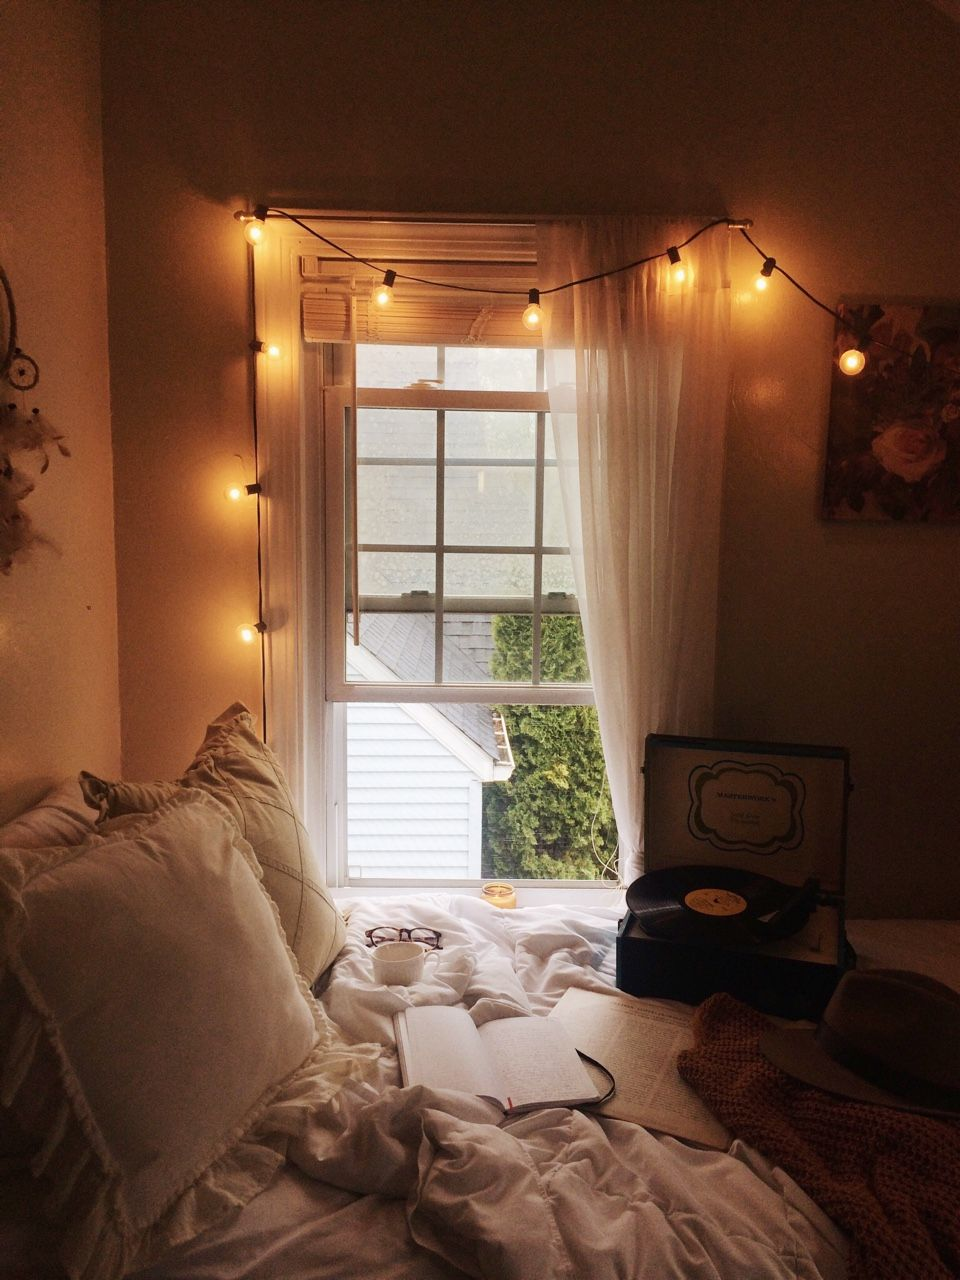 Introverted Bookworm Joli Coeur Rainy Days In This Spot Aesthetic Bedroom Cosy Room Rooms Home Decor